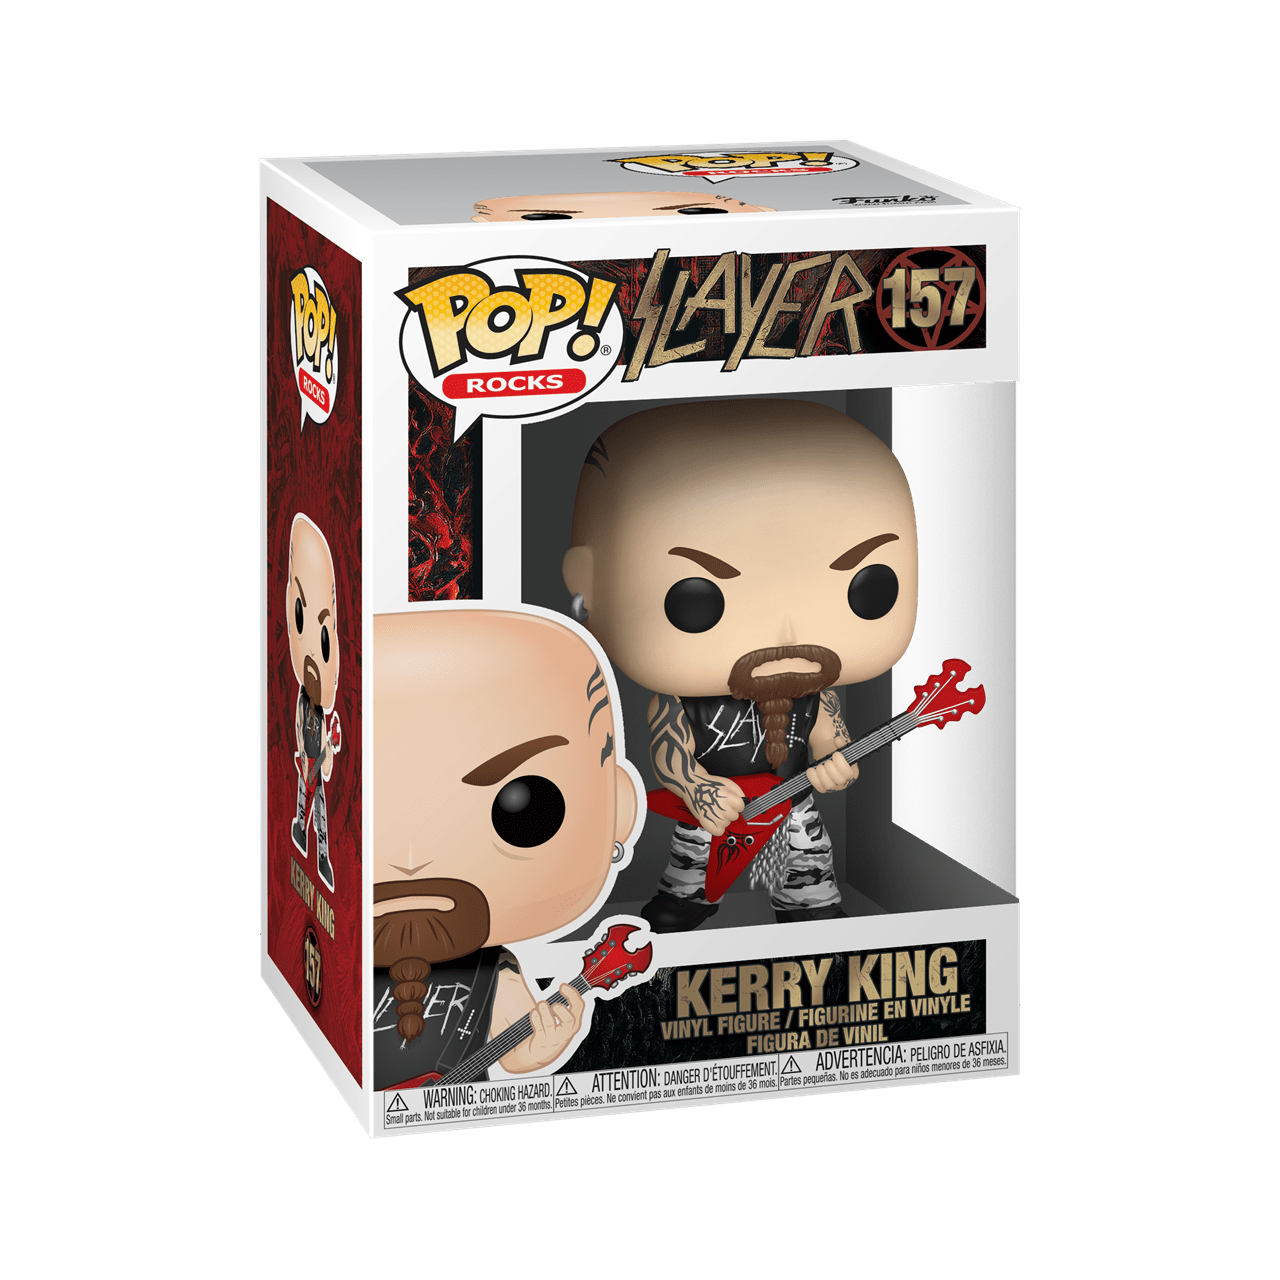 Kerry King (157) Slayer Pop Vinyl - 2